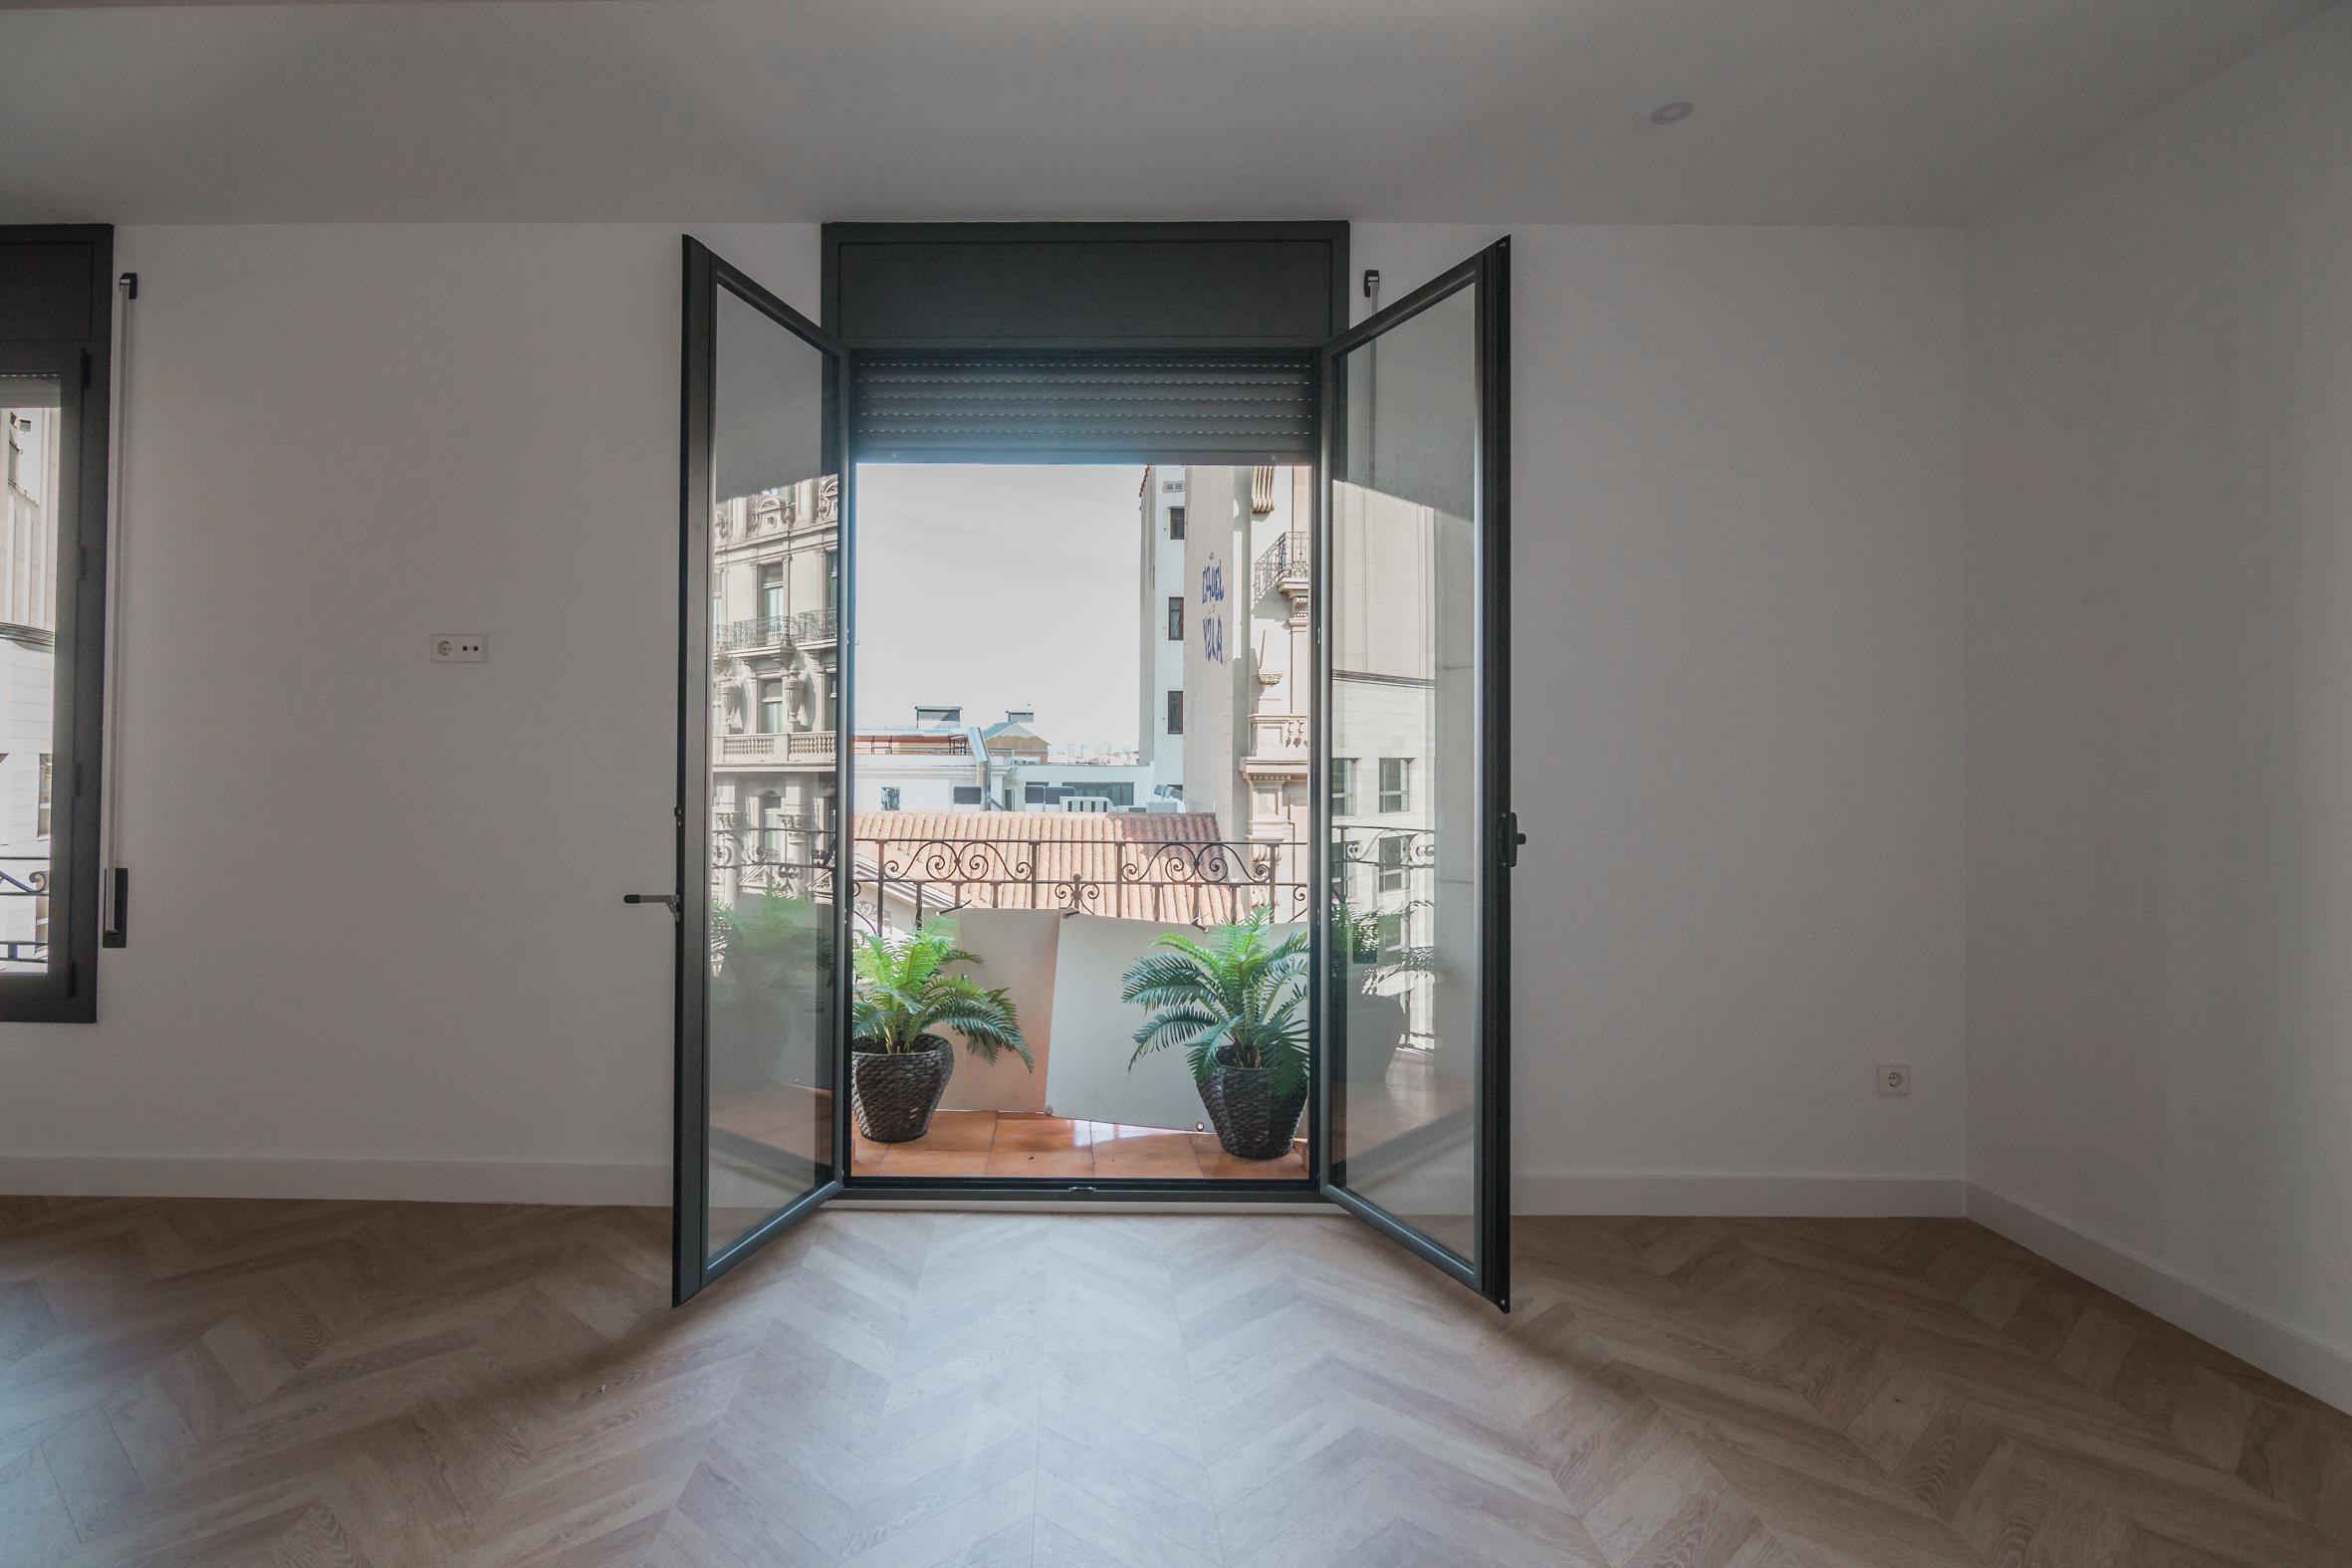 244010 Flat for sale in Ciutat Vella, Barri Gótic 2